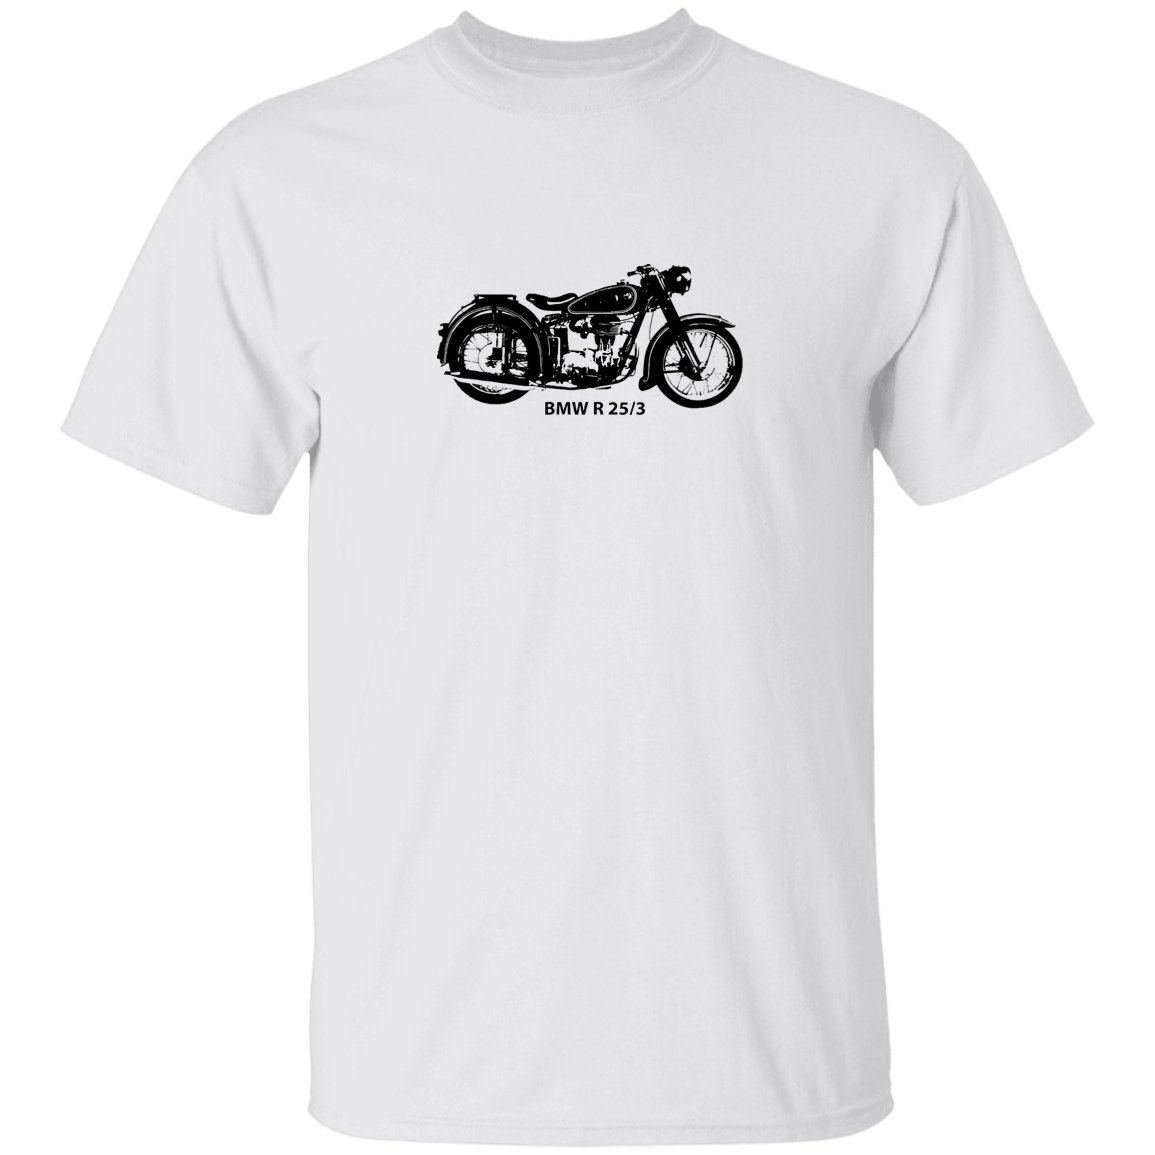 BMW R 25/3 Classic Motorcycle T-Shirt